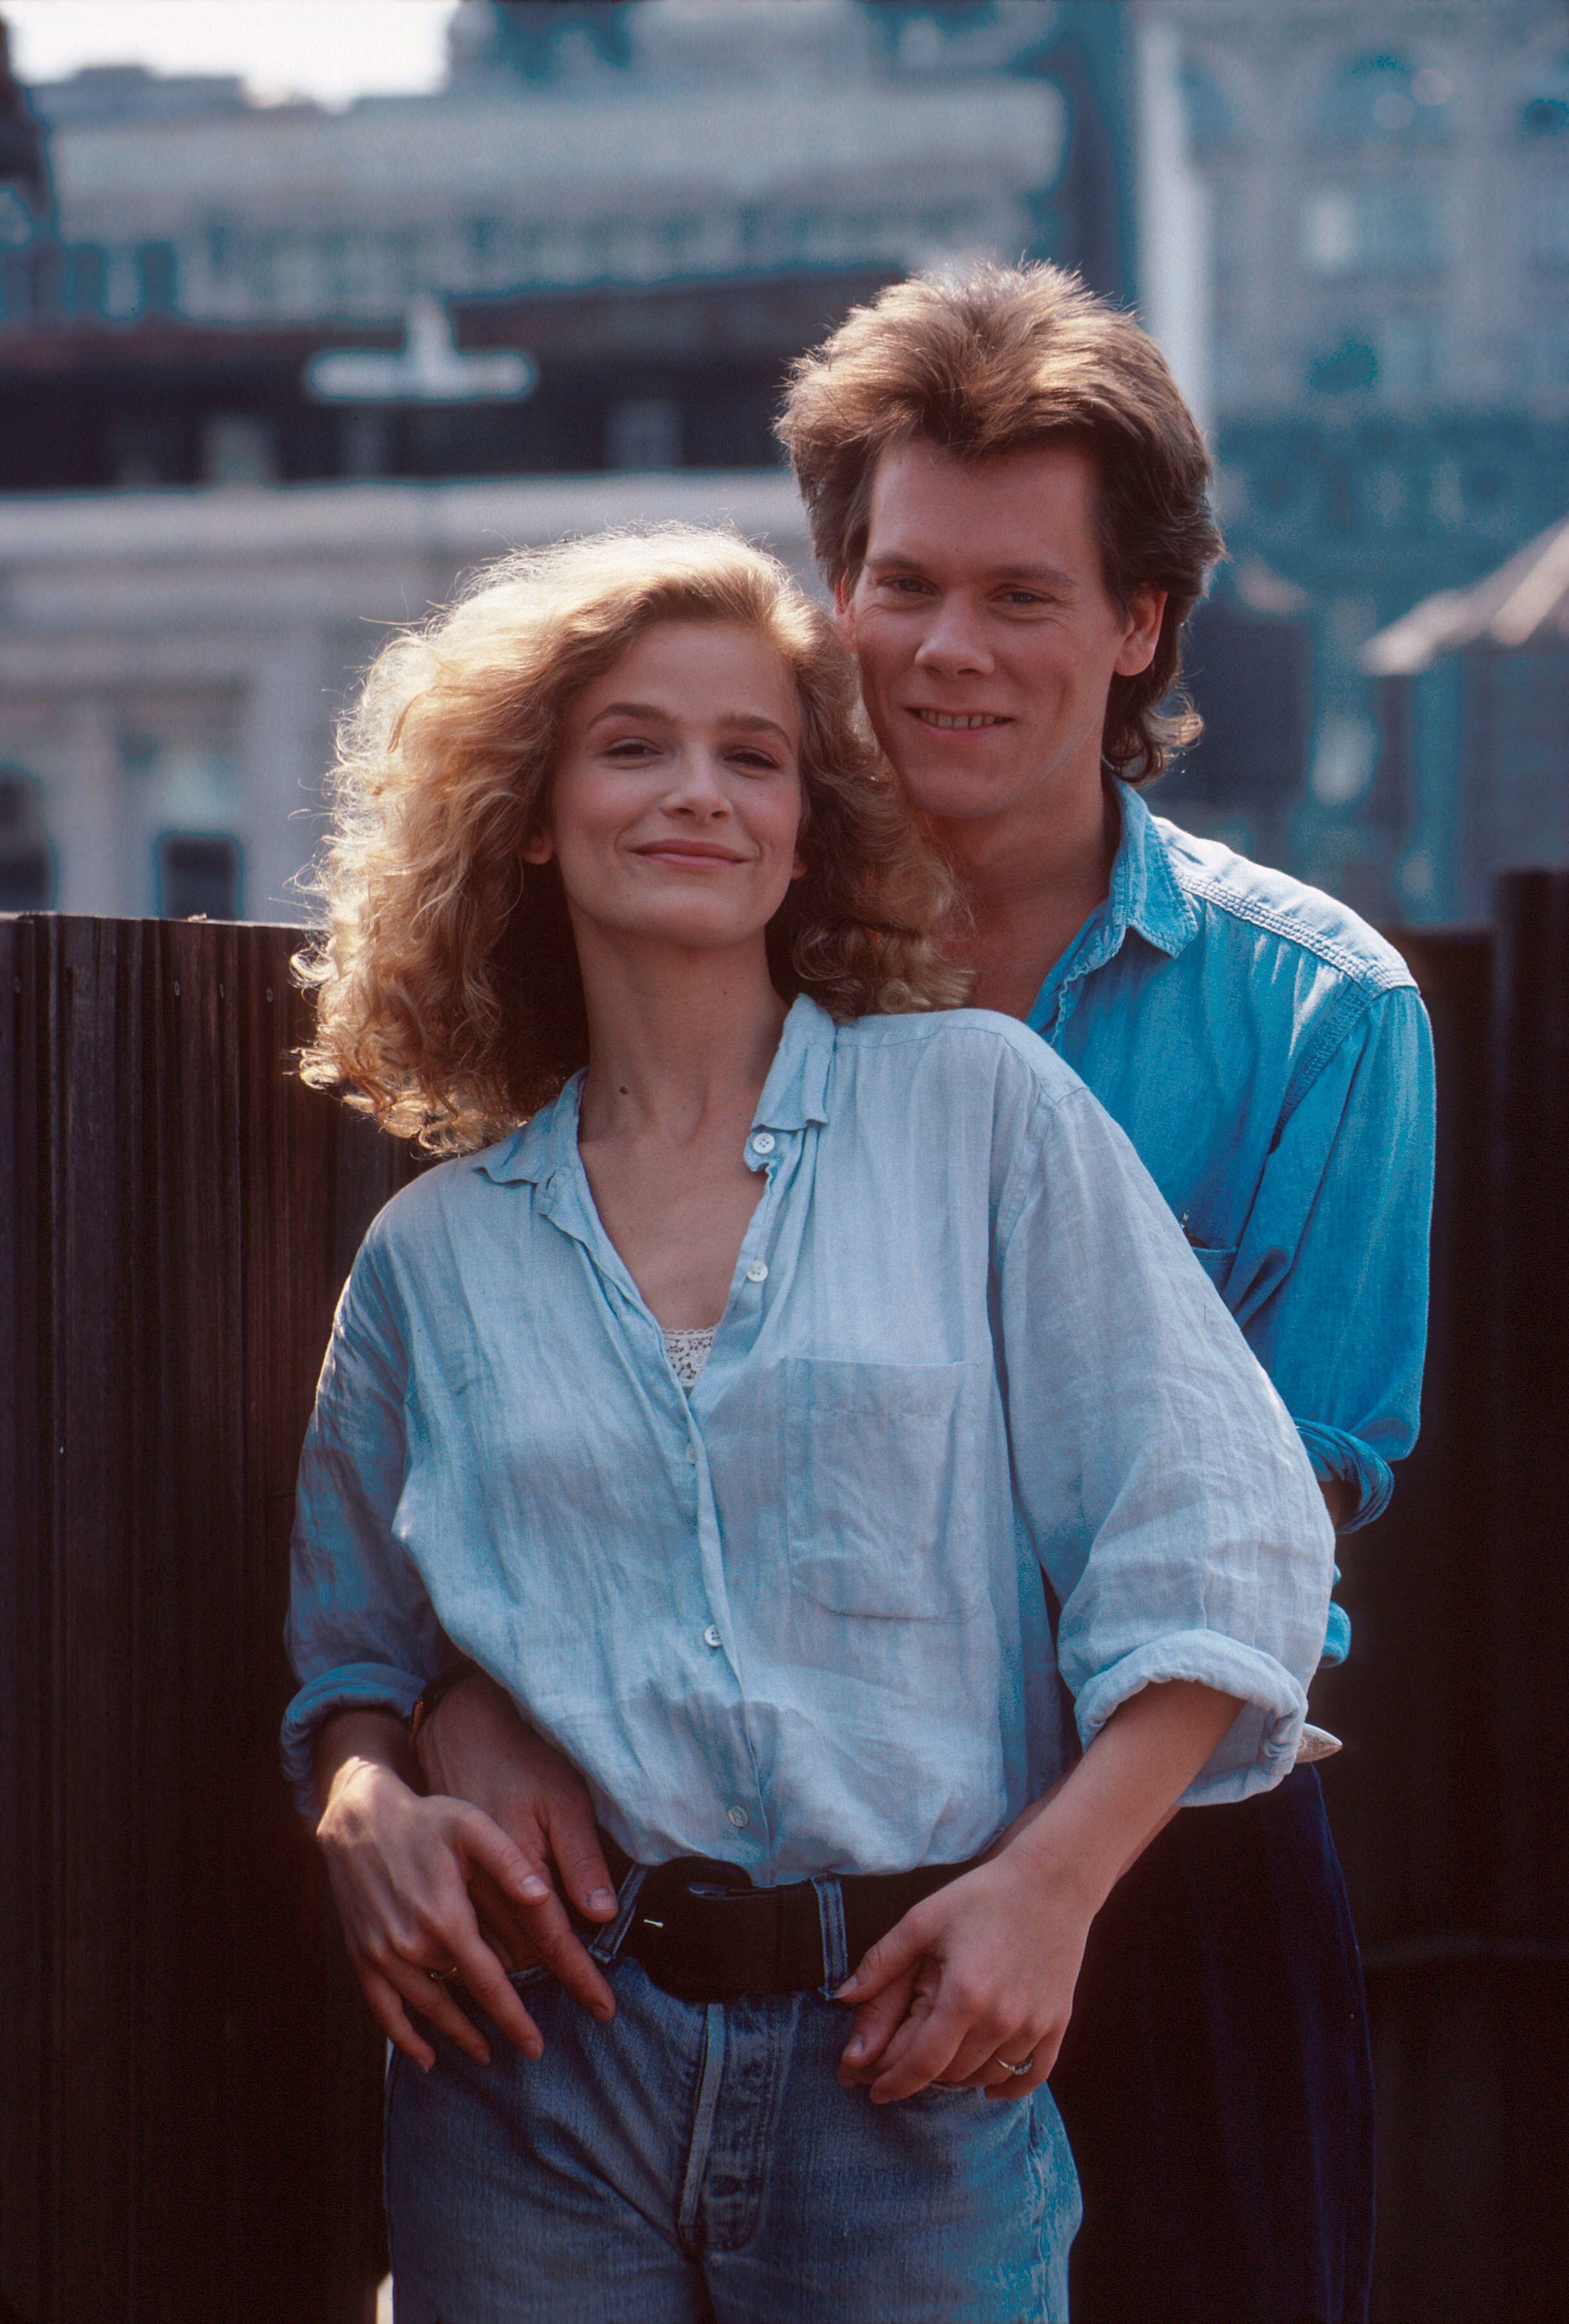 Kevin Bacon avec Kyra Sedgwick en séance photo à New York en 1988 | Getty Images